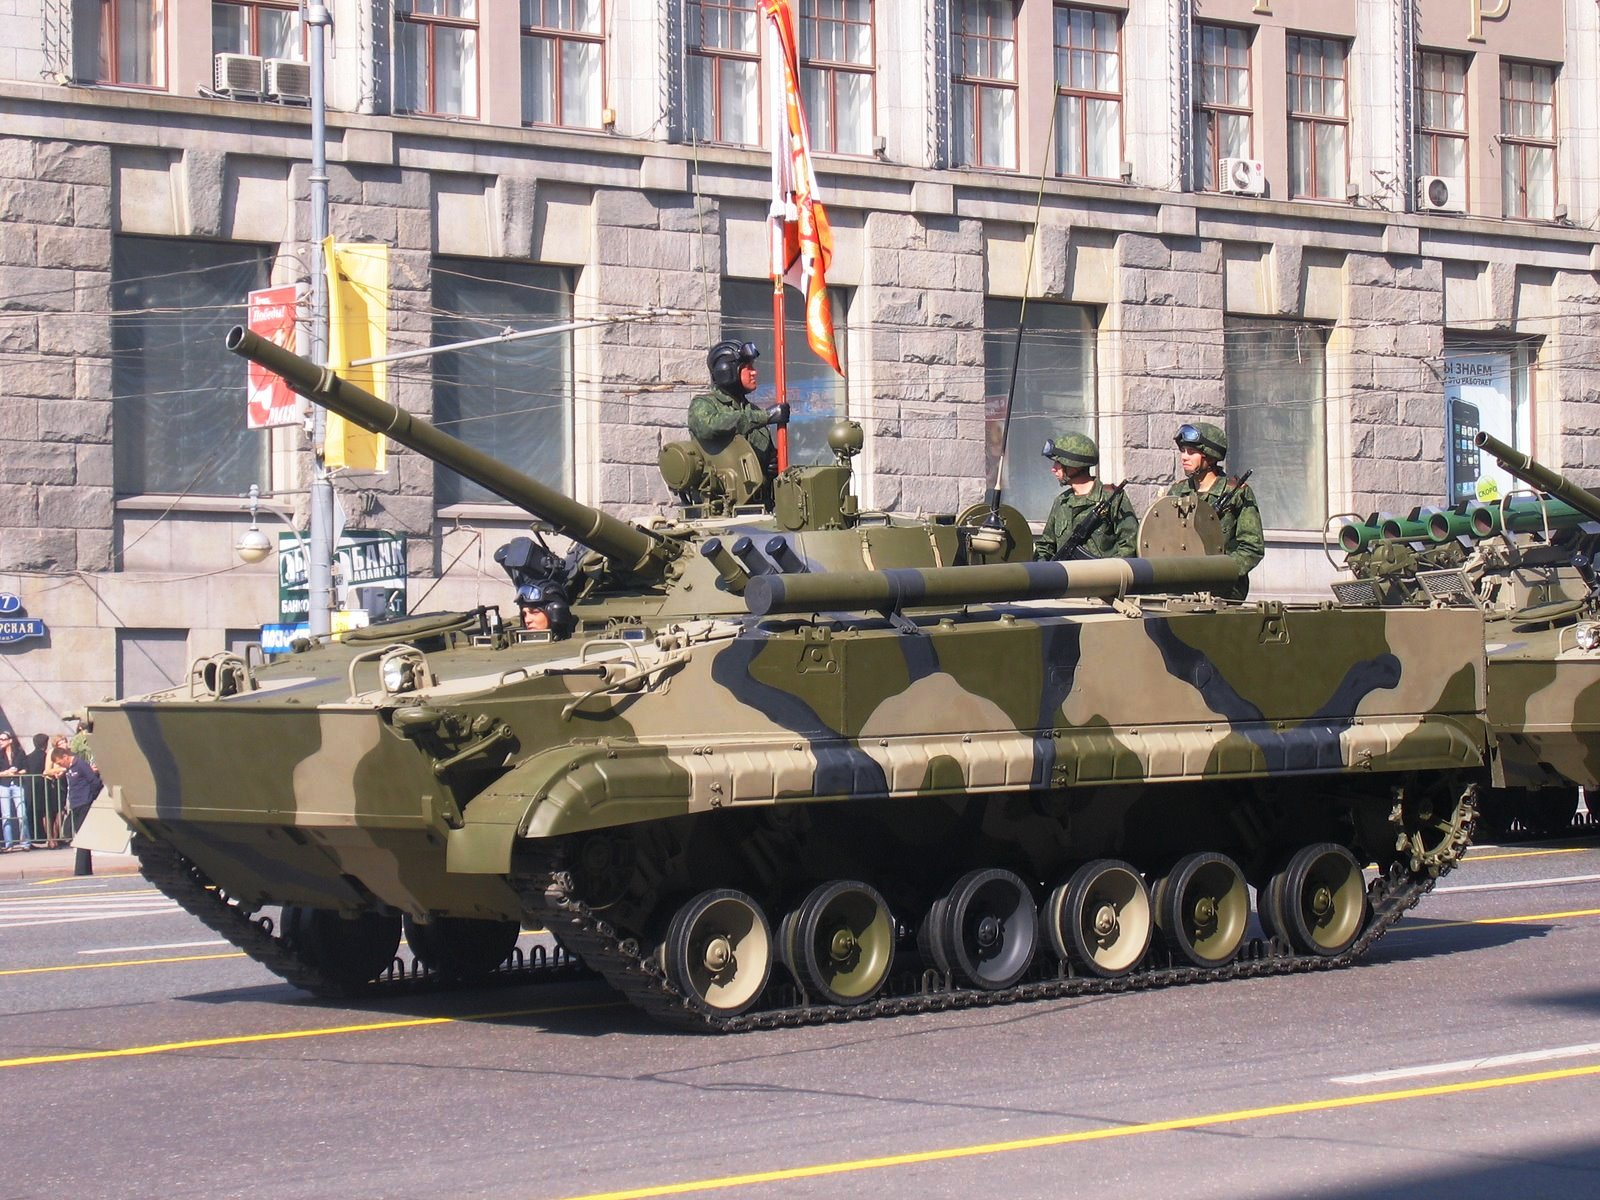 Equipment of the Ukrainian Ground Forces